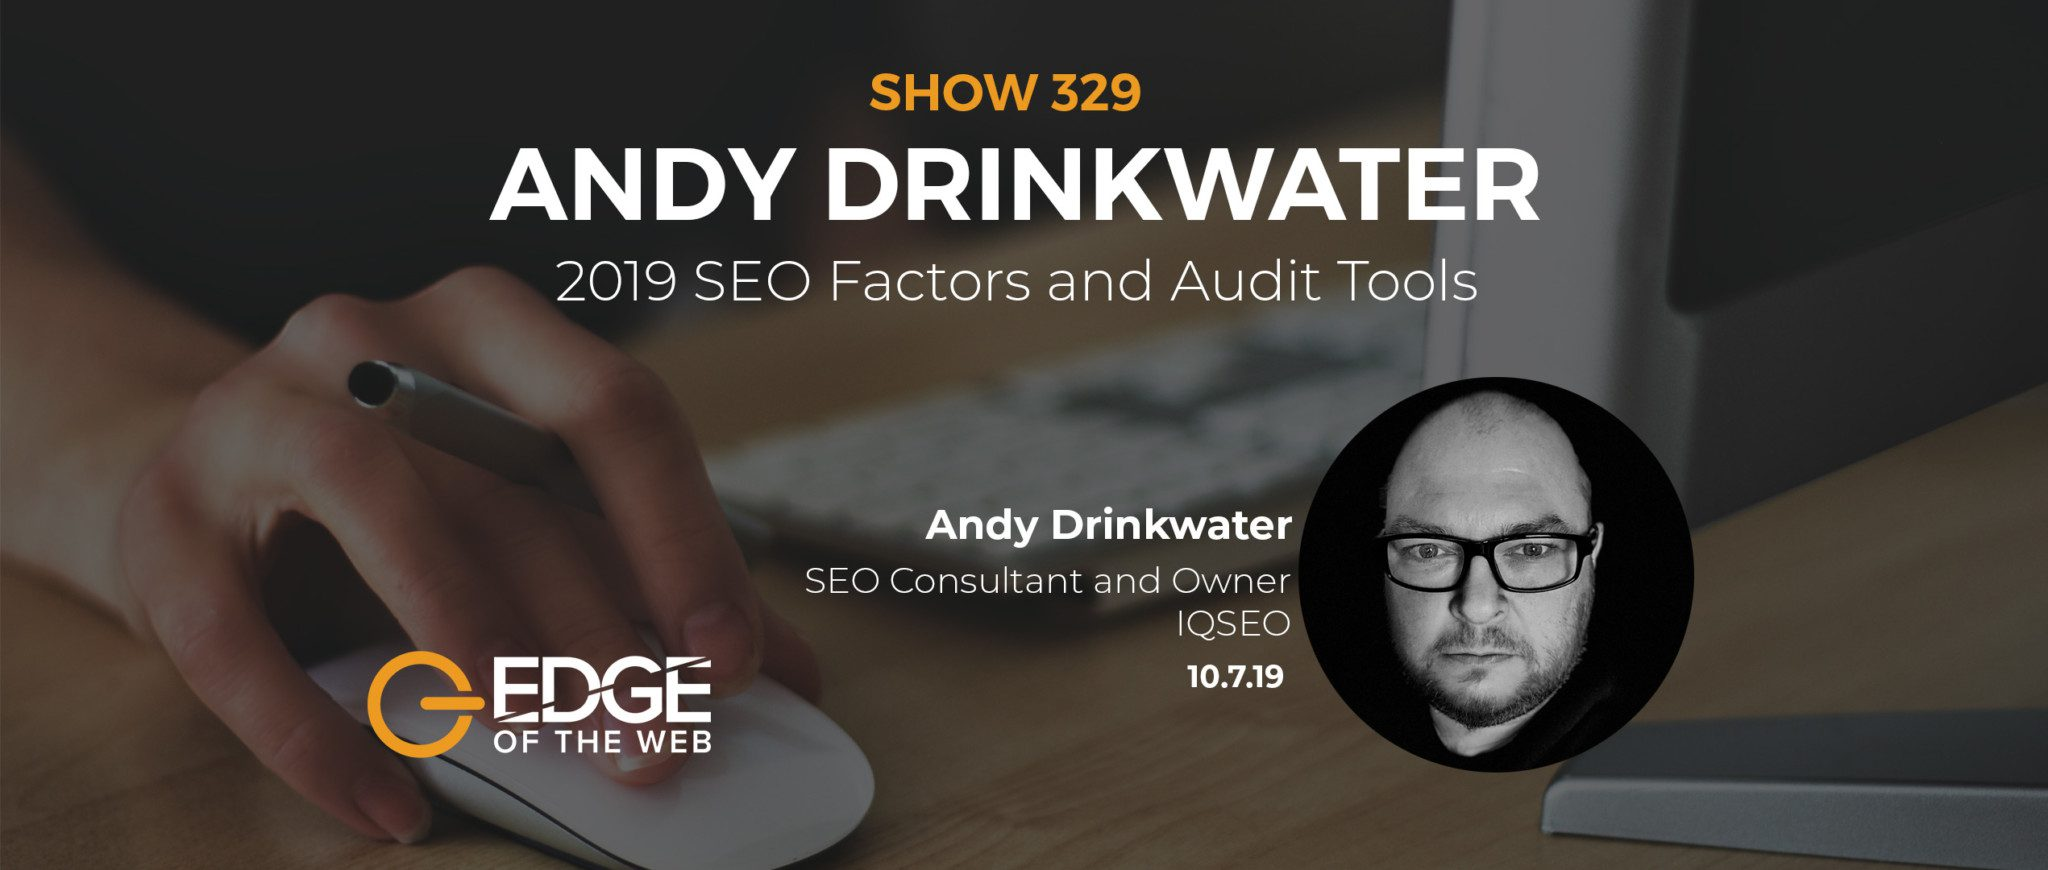 Show 329: 2019 SEO factors and audit tools, featuring Andy Drinkwater